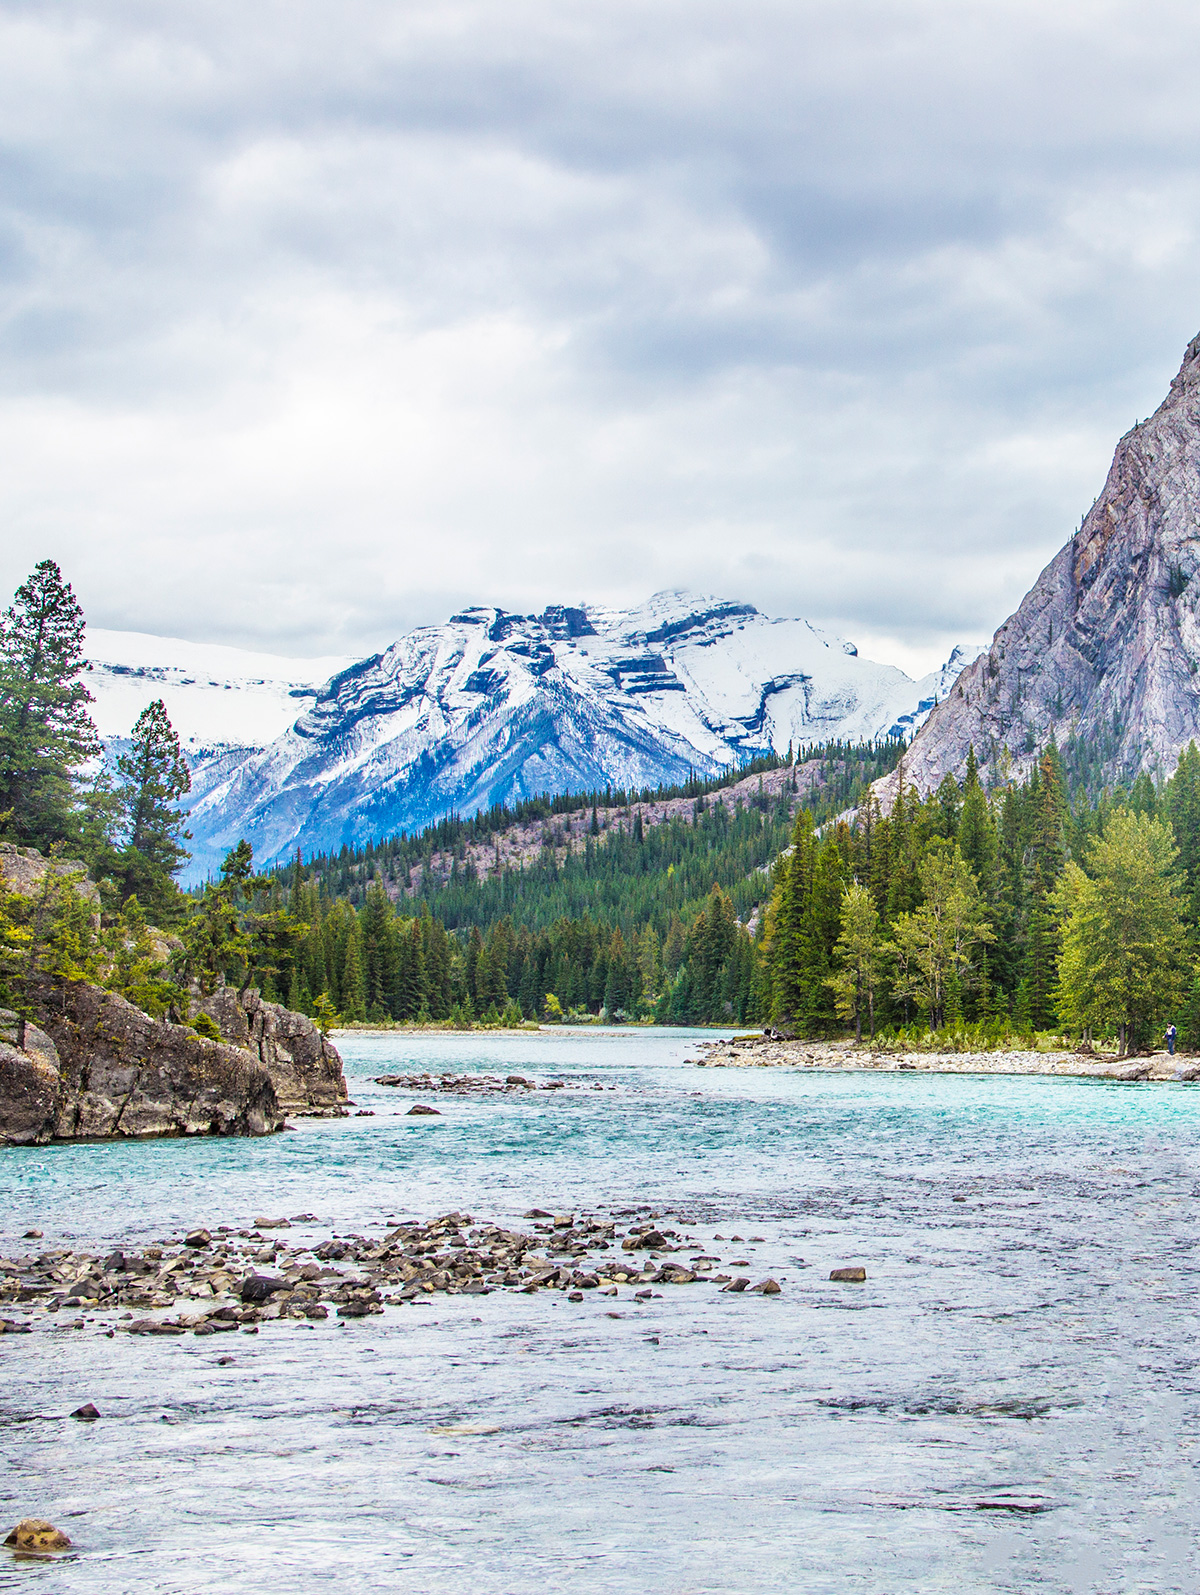 View-of-the-Mountains-From-Spray-River-Banff